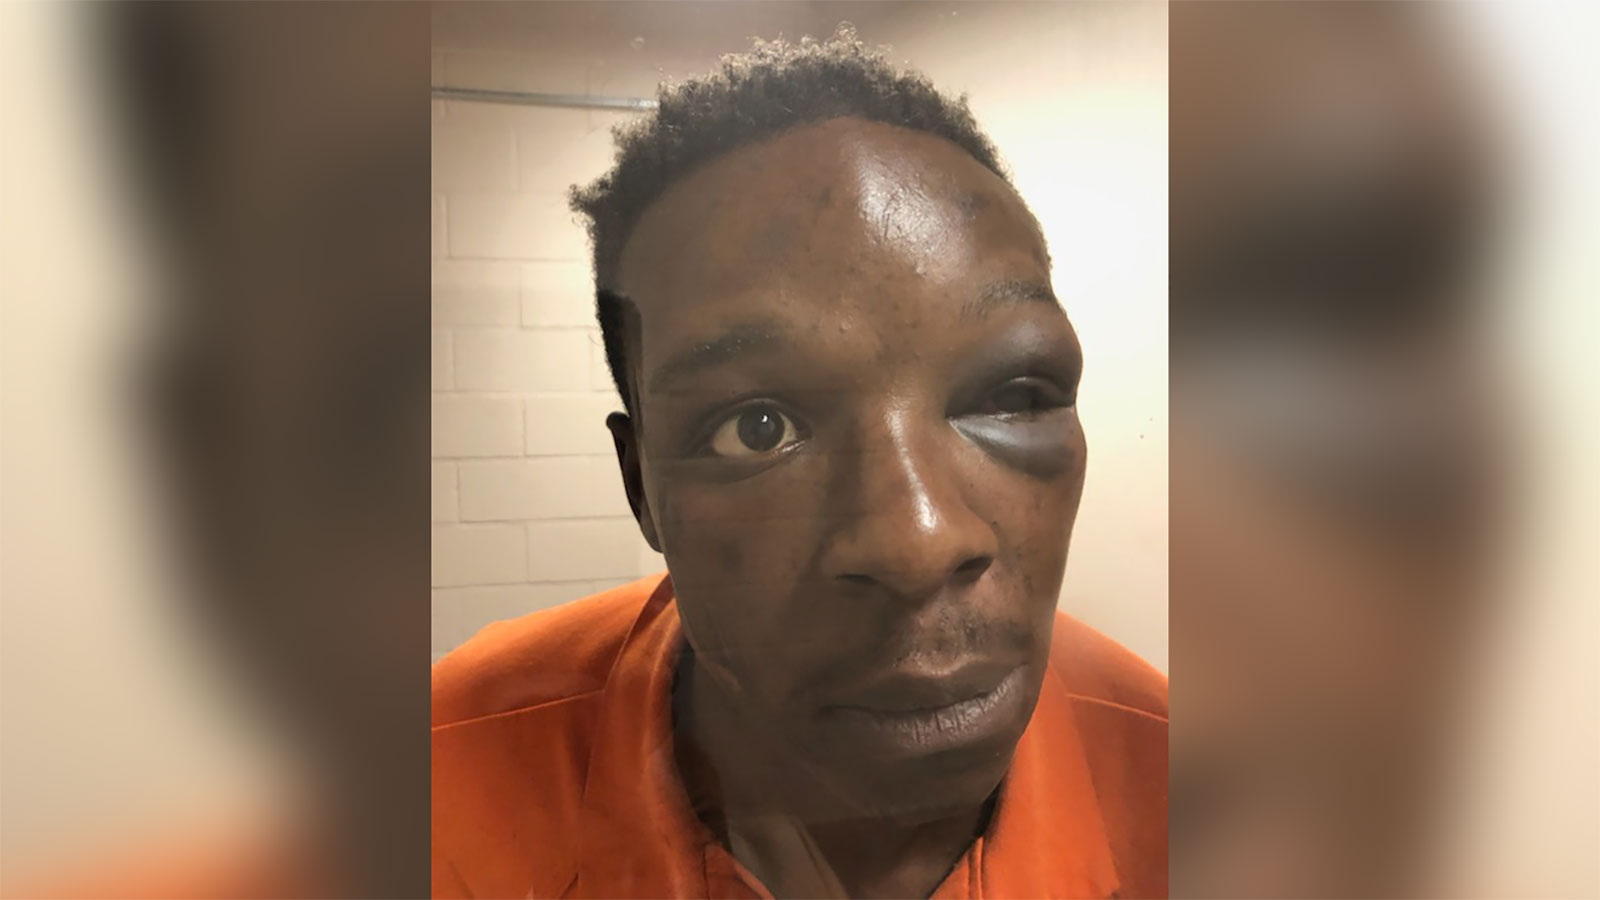 Sheriff's deputy in Georgia fired after video shows him repeatedly striking man